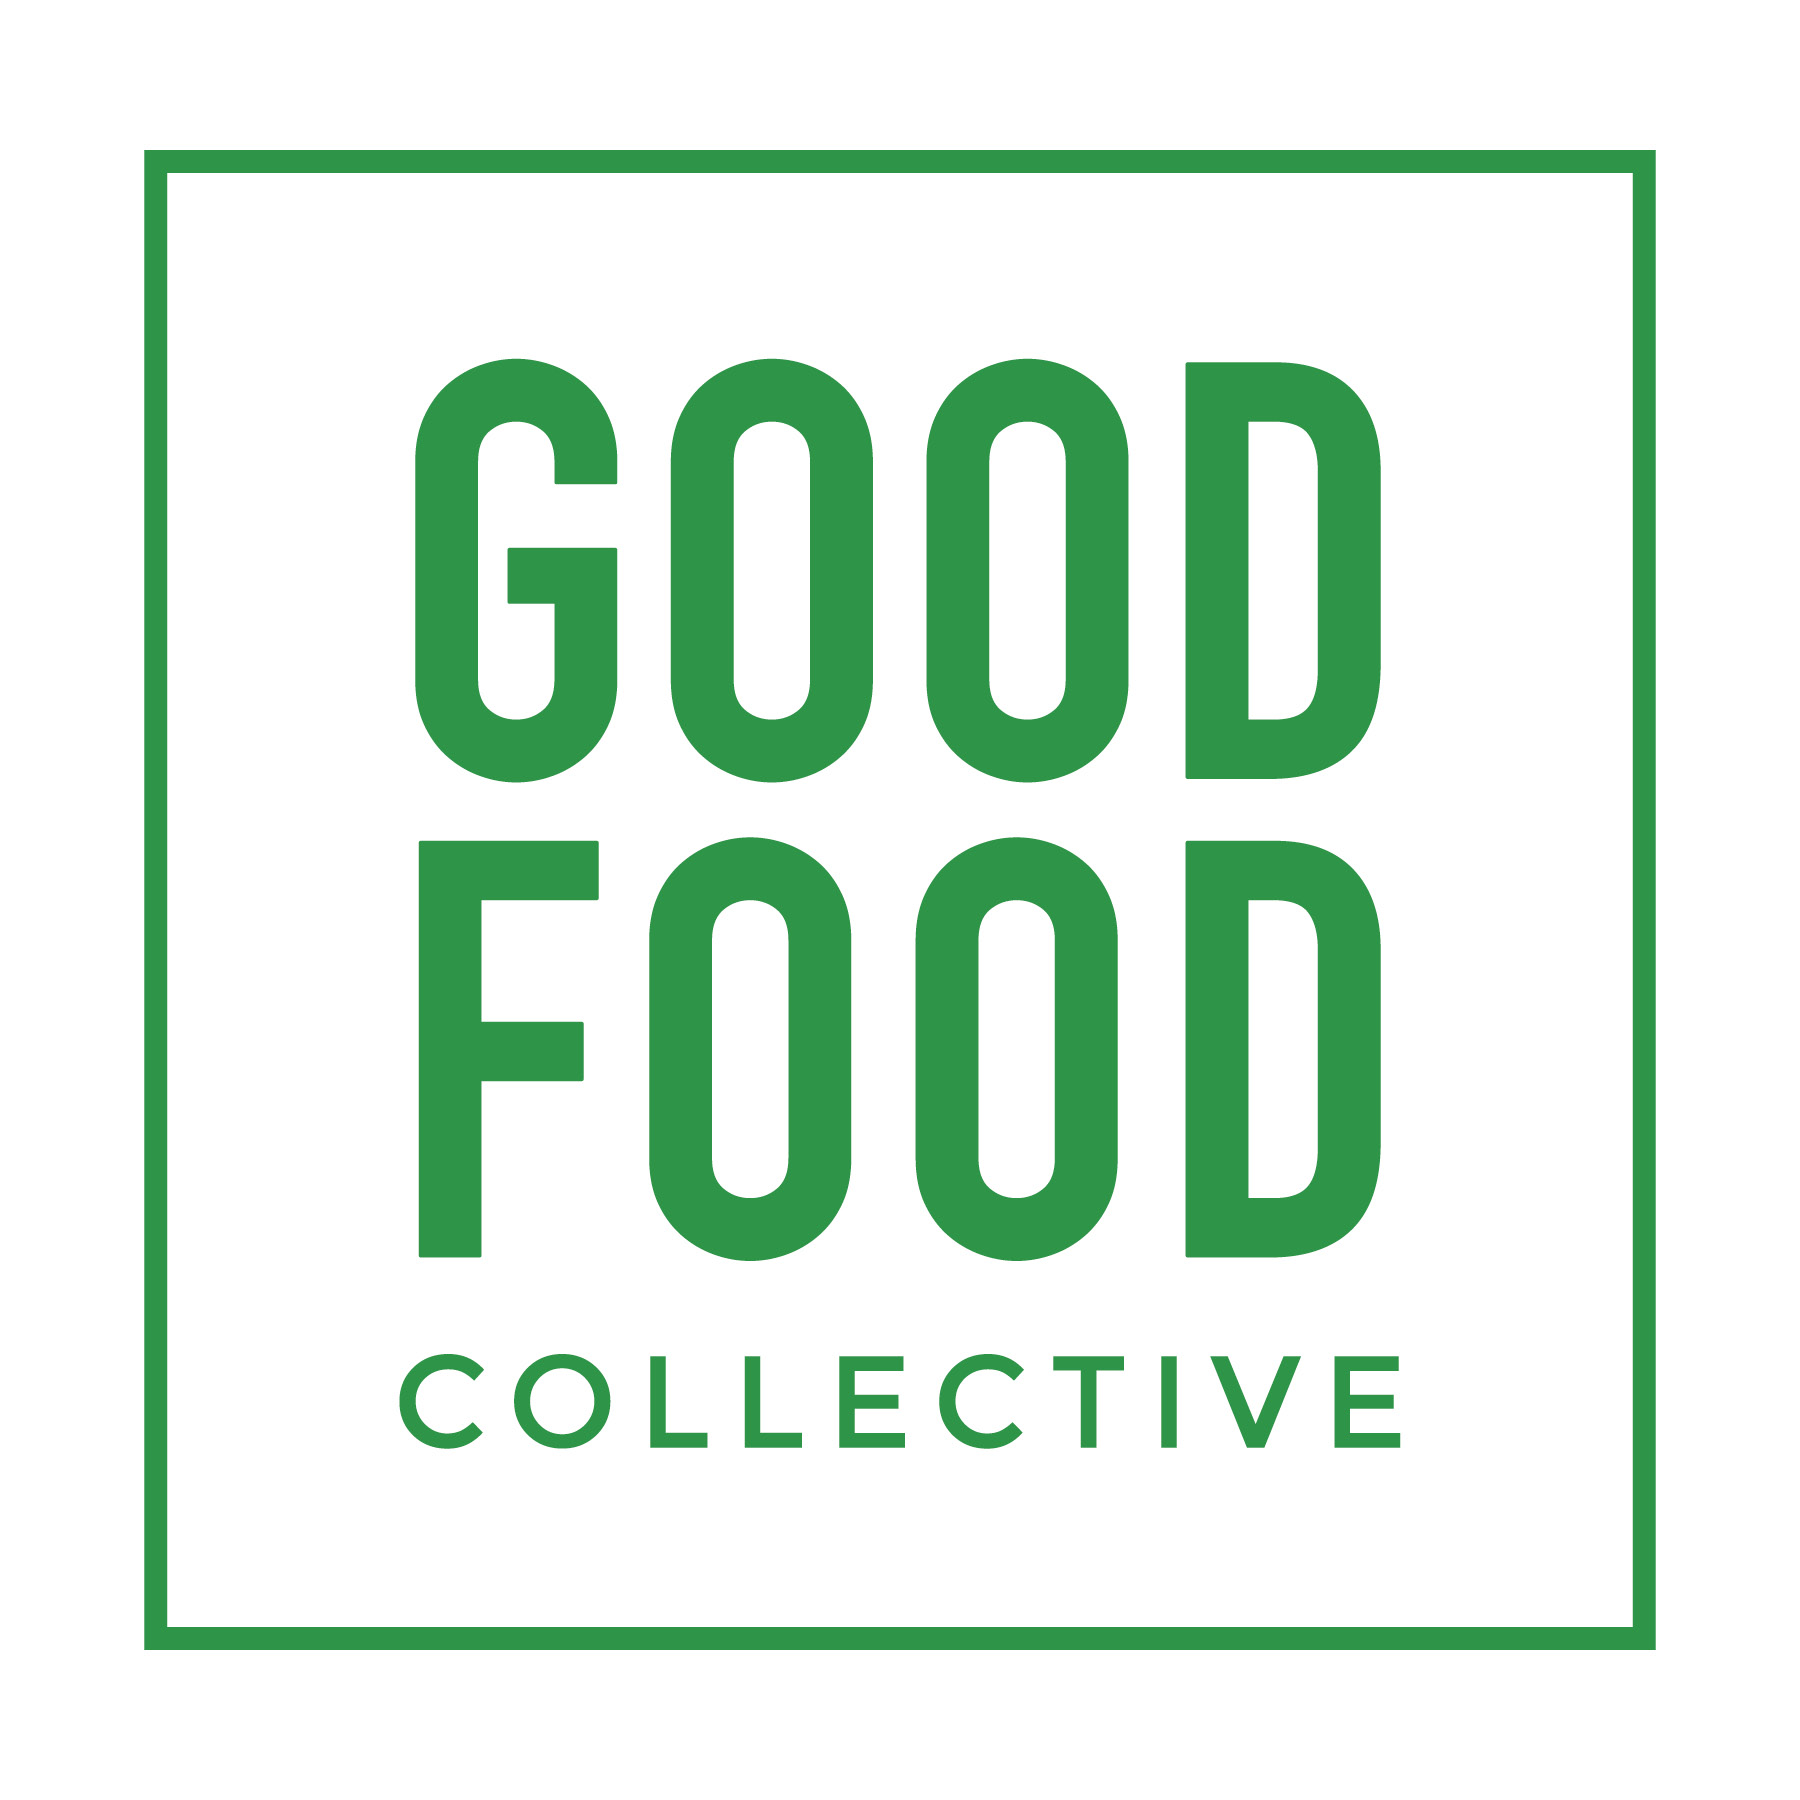 Good Food Collective logo